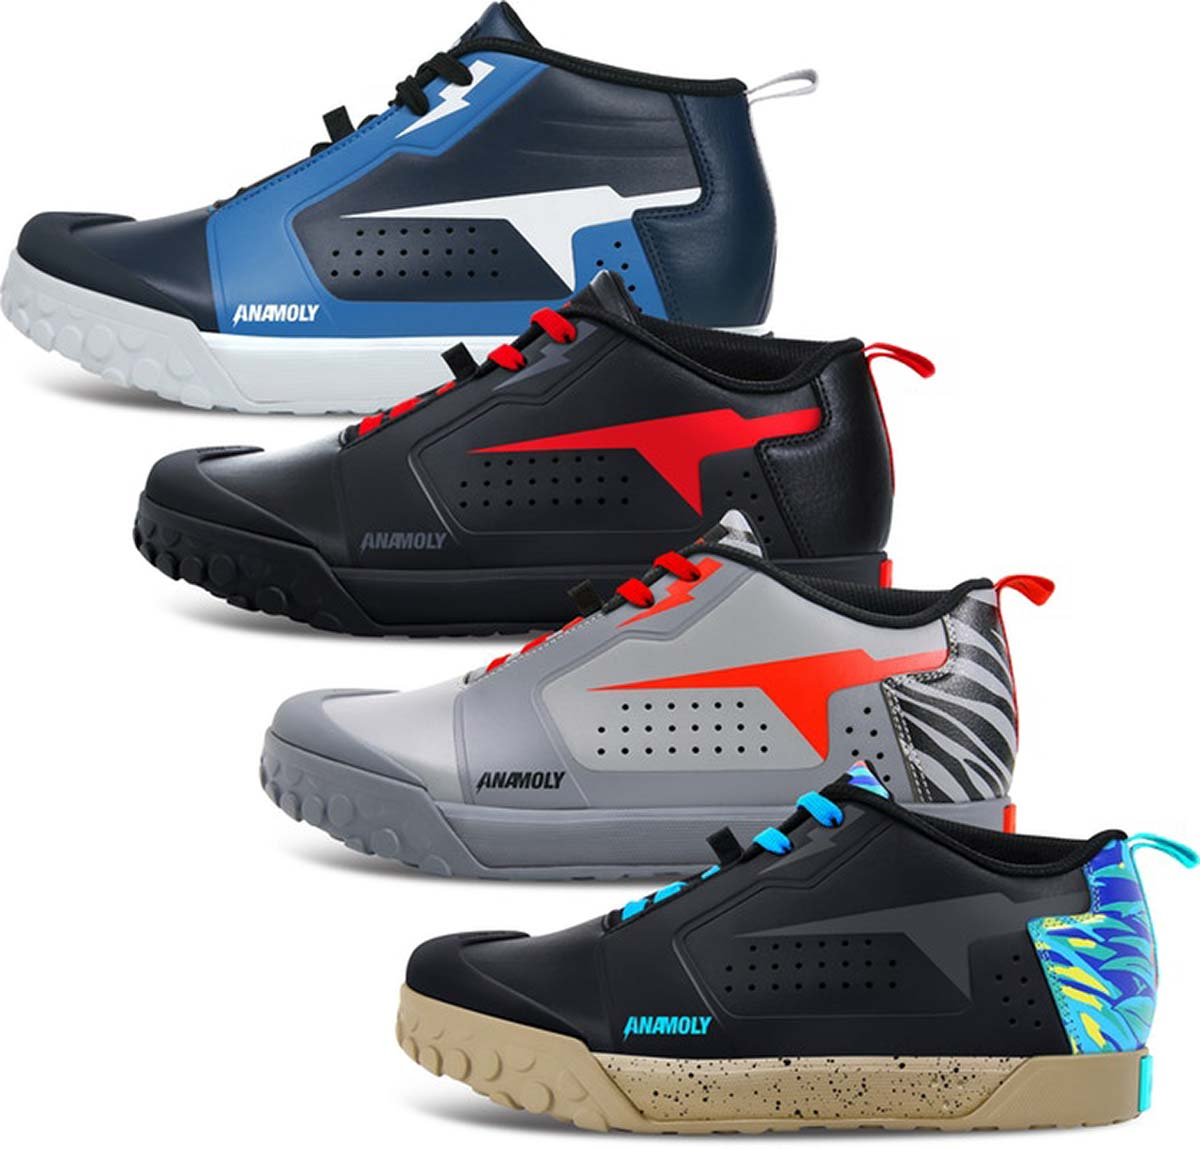 anamoly mtb shoes for flat pedal four colorway options